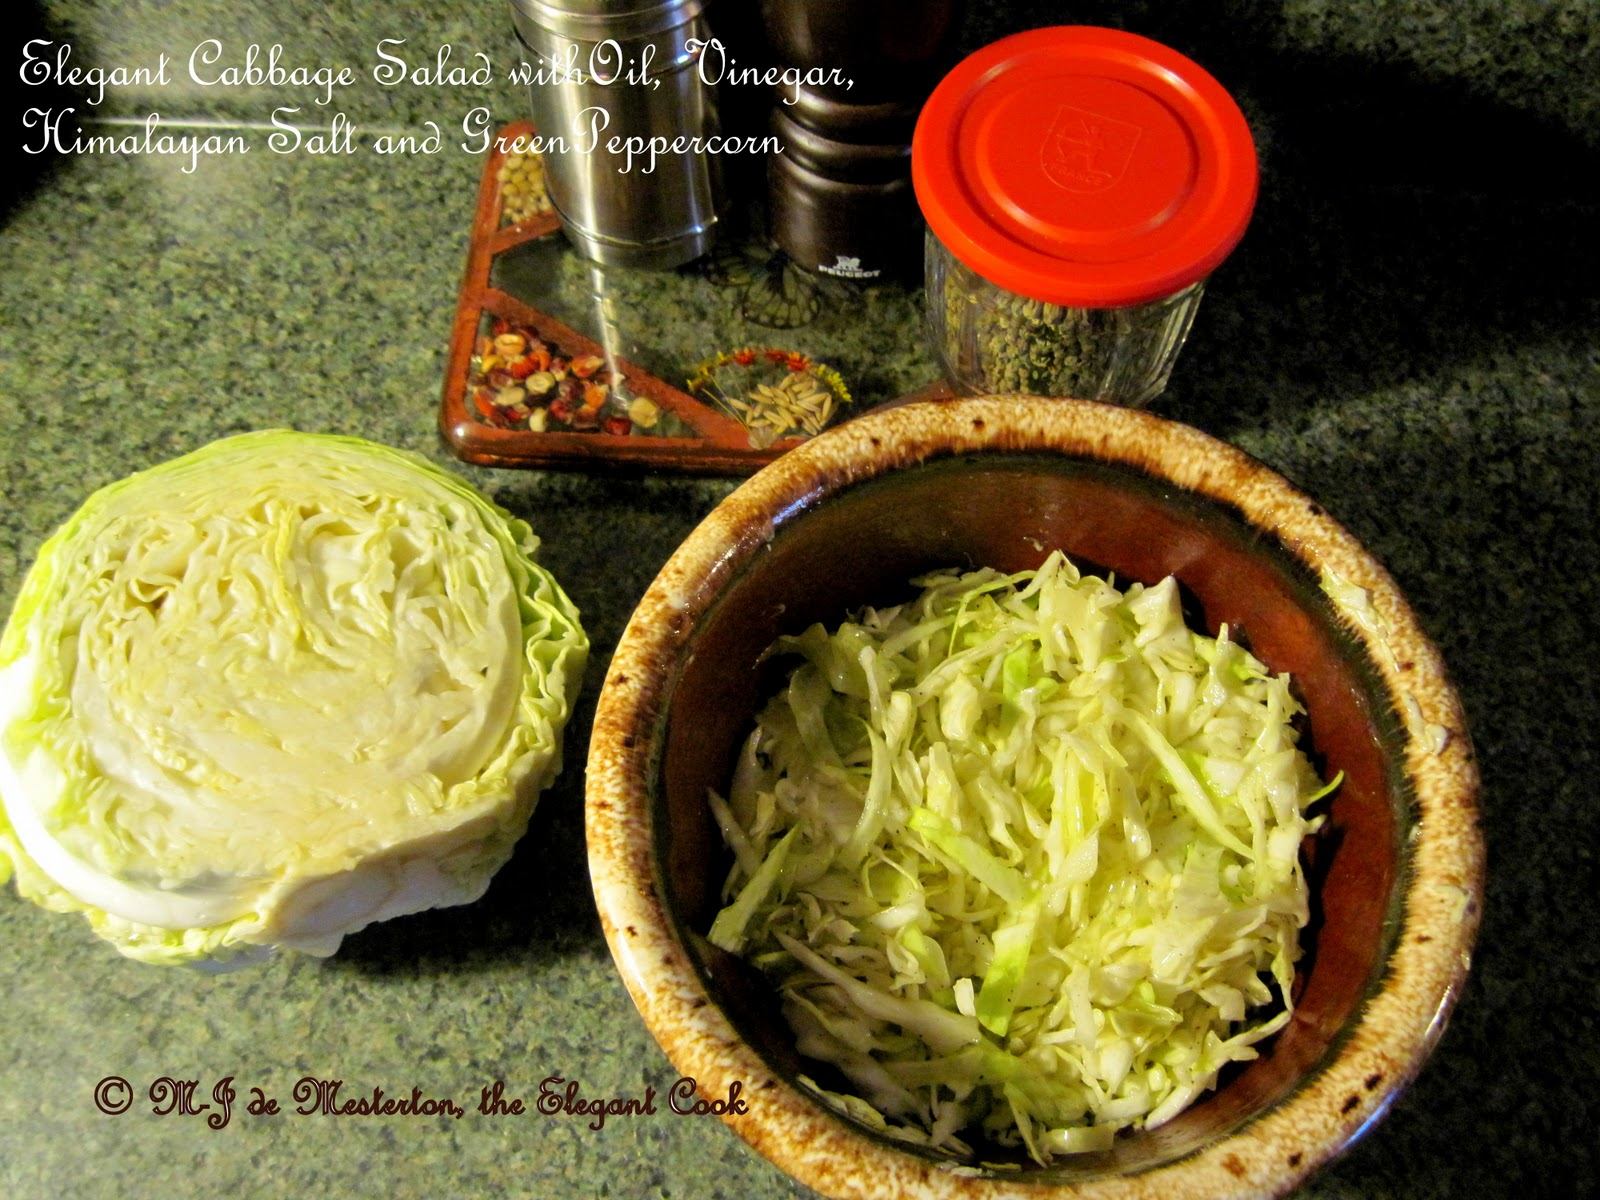 Green cabbage can be marinated in a salad European-style, stuffed as c ...